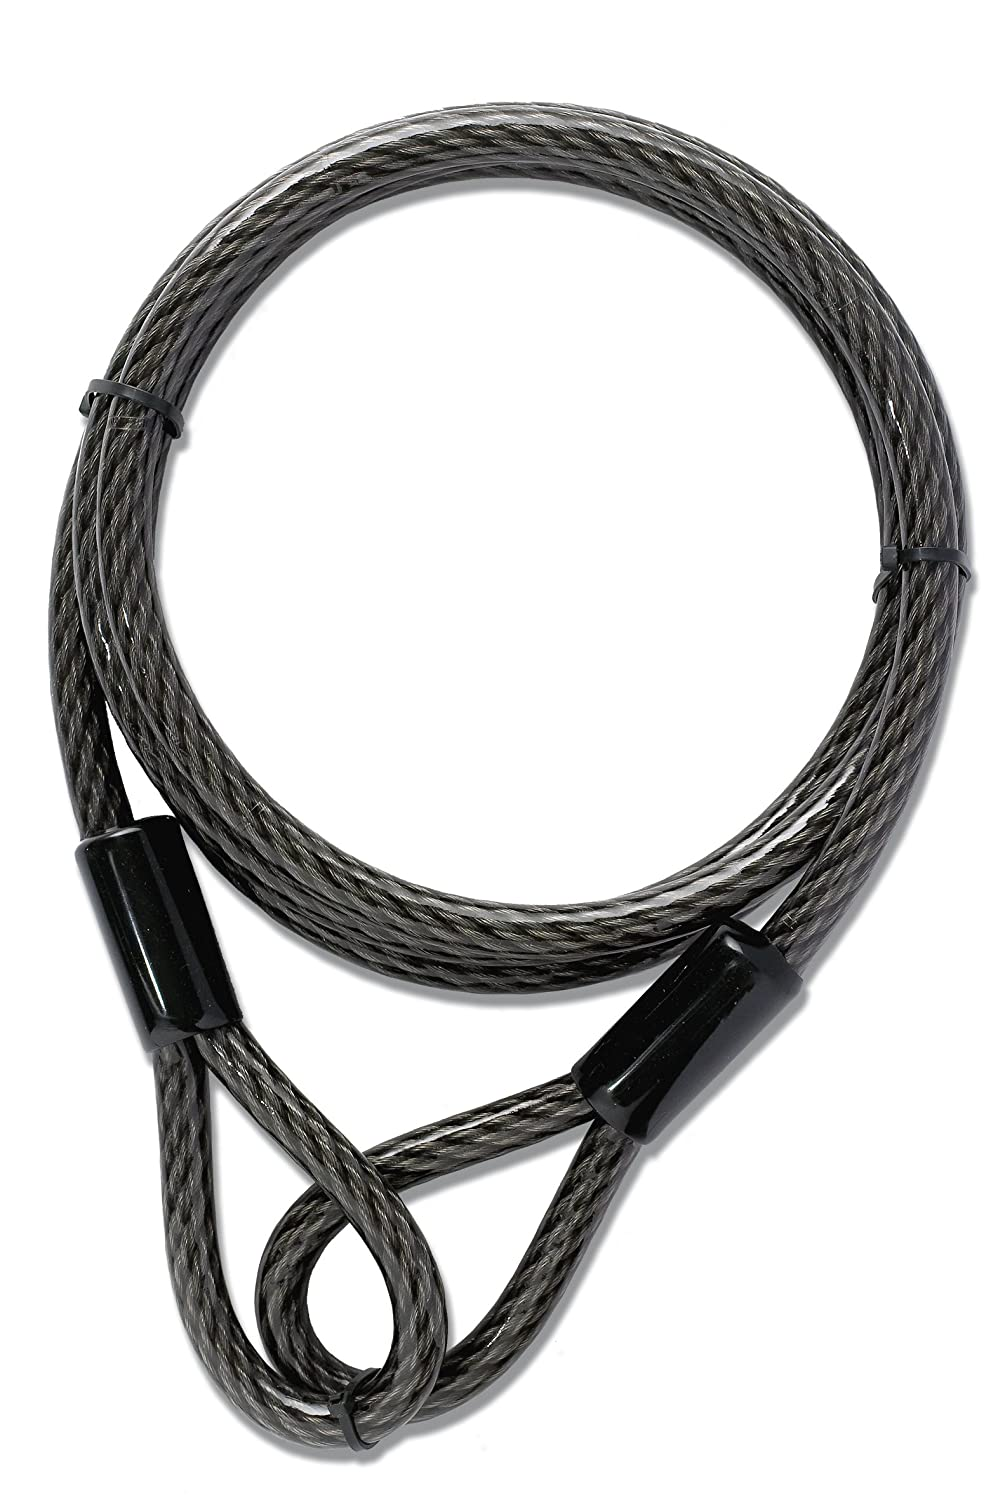 Yale Double Looped 8mm Thick 2m Length Flexible Extension Steel Cable Bike Bicycle Lock Toolbank YALYCBL18200